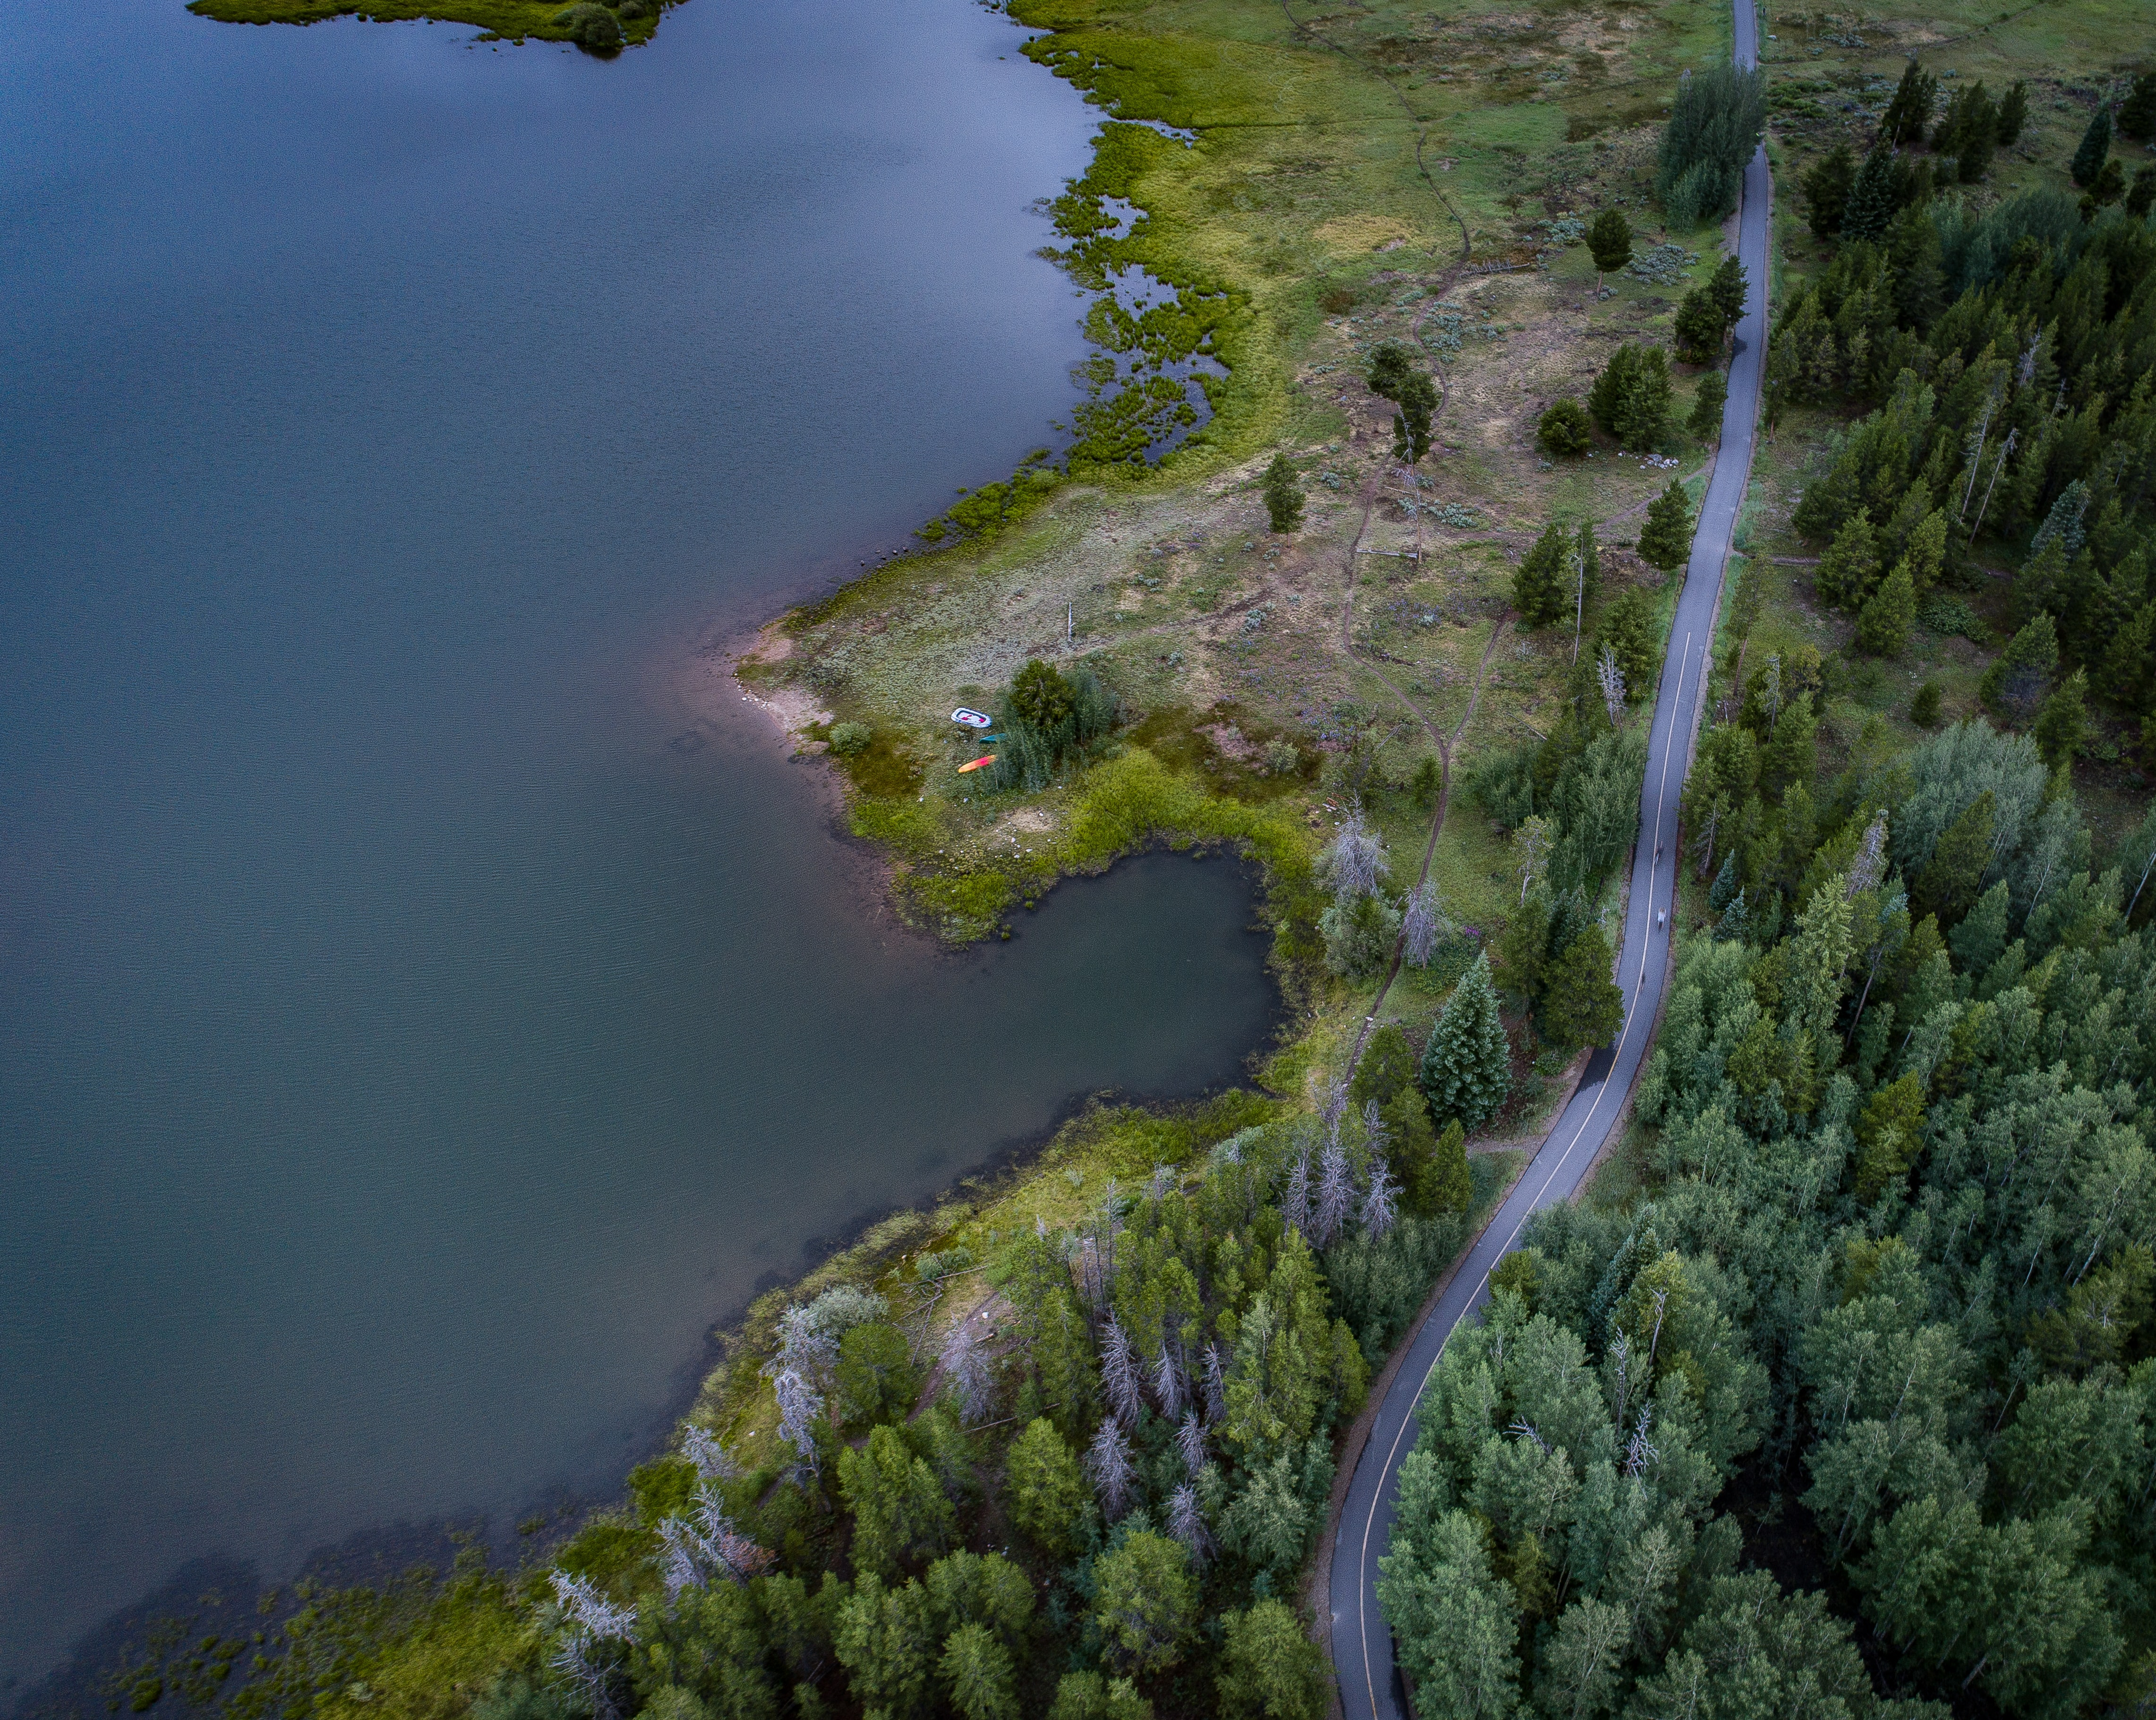 areal view of body of water and green trees